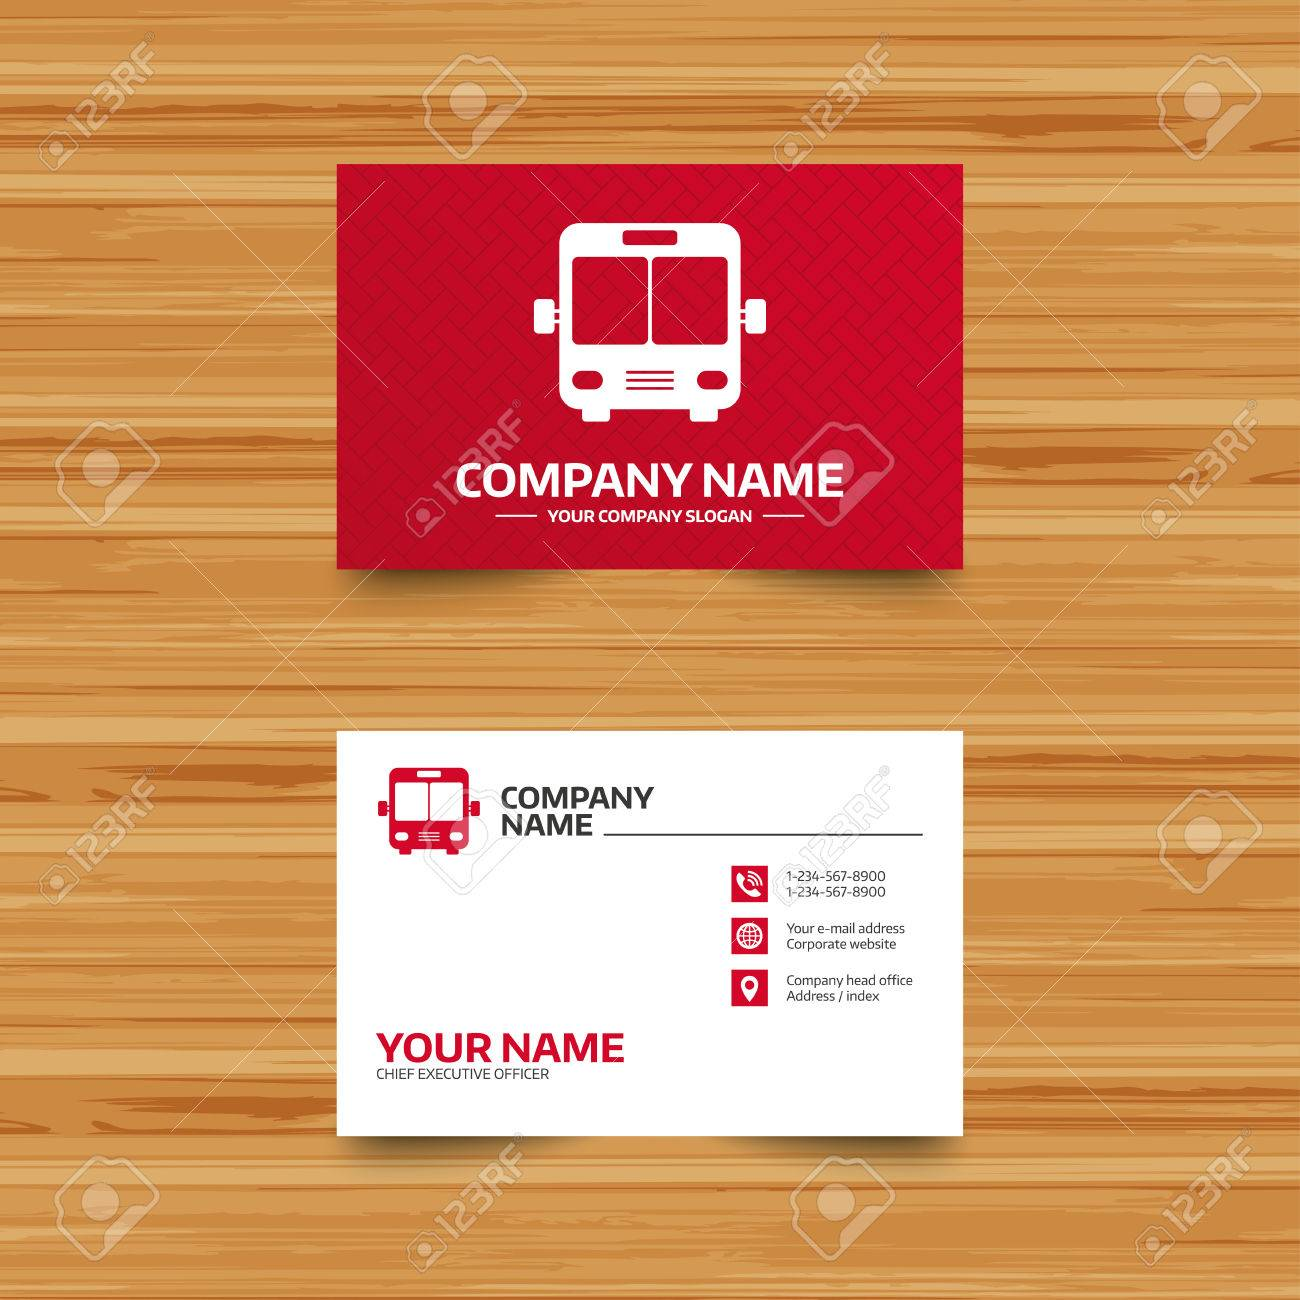 Business card template bus sign icon public transport symbol business card template bus sign icon public transport symbol phone globe and magicingreecefo Gallery